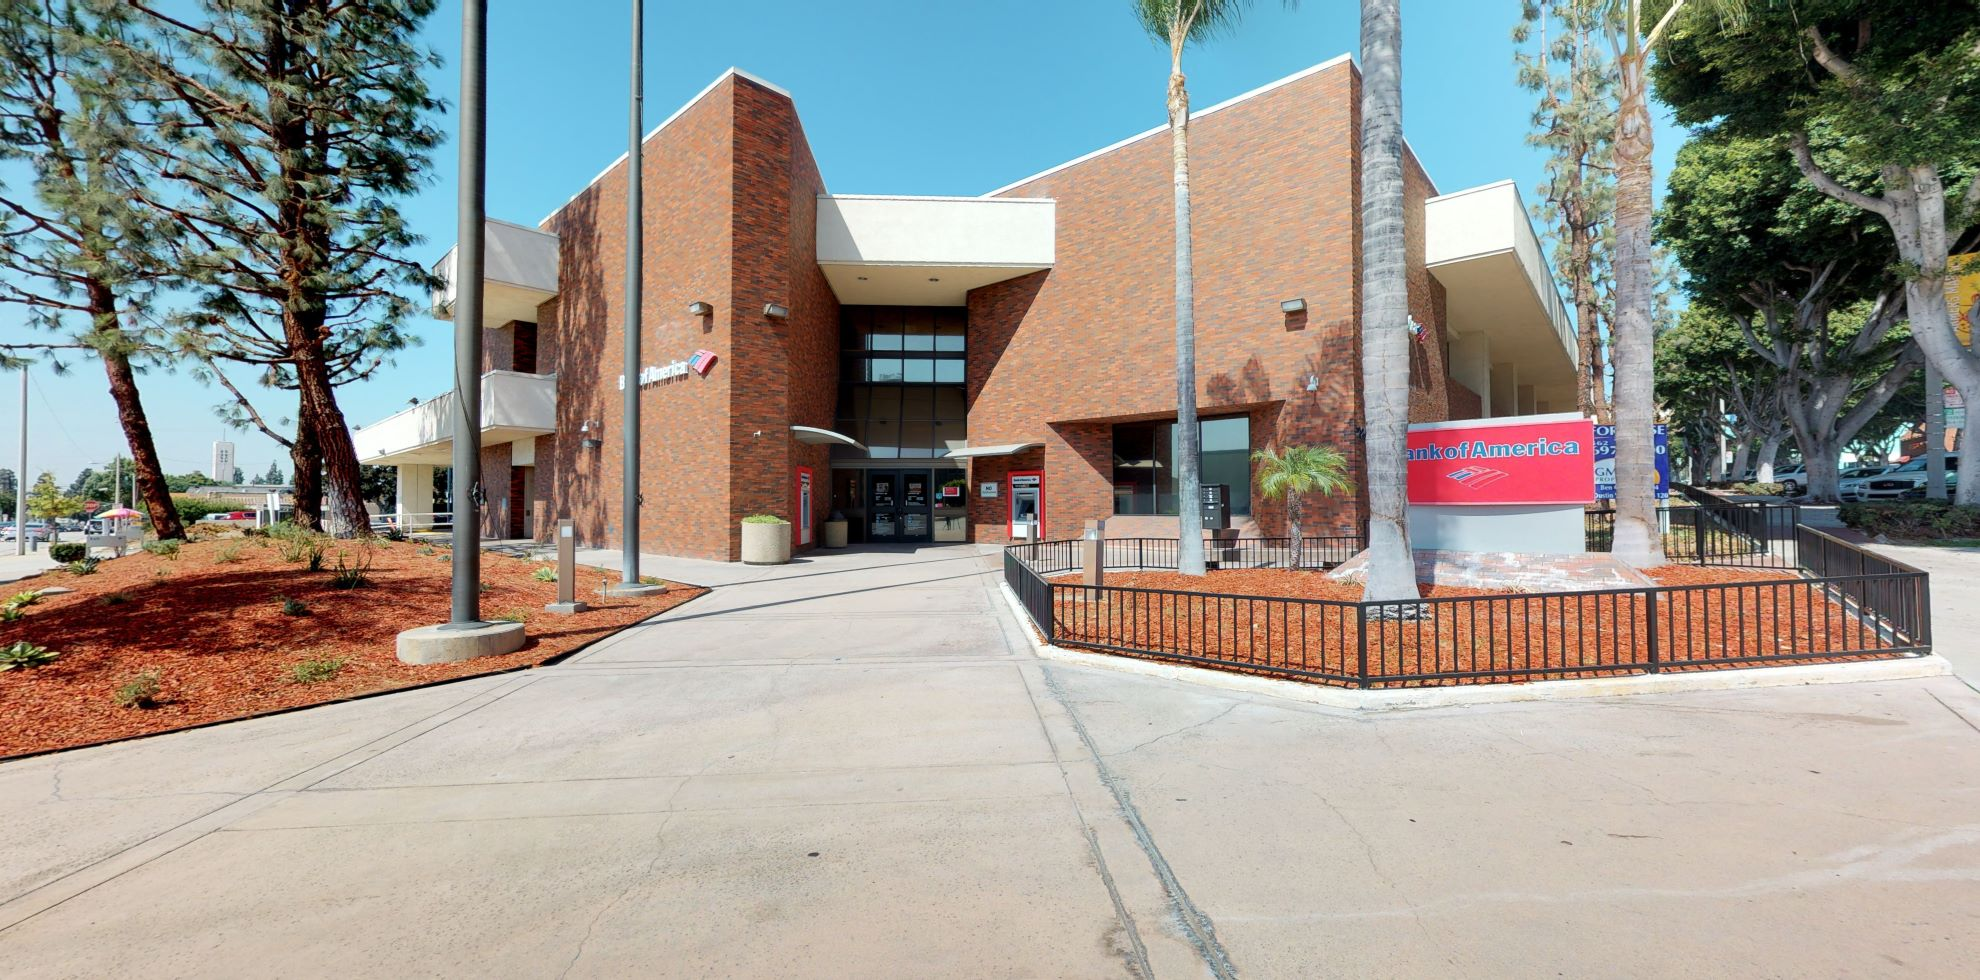 Bank of America financial center with drive-thru ATM | 7255 Greenleaf Ave, Whittier, CA 90602